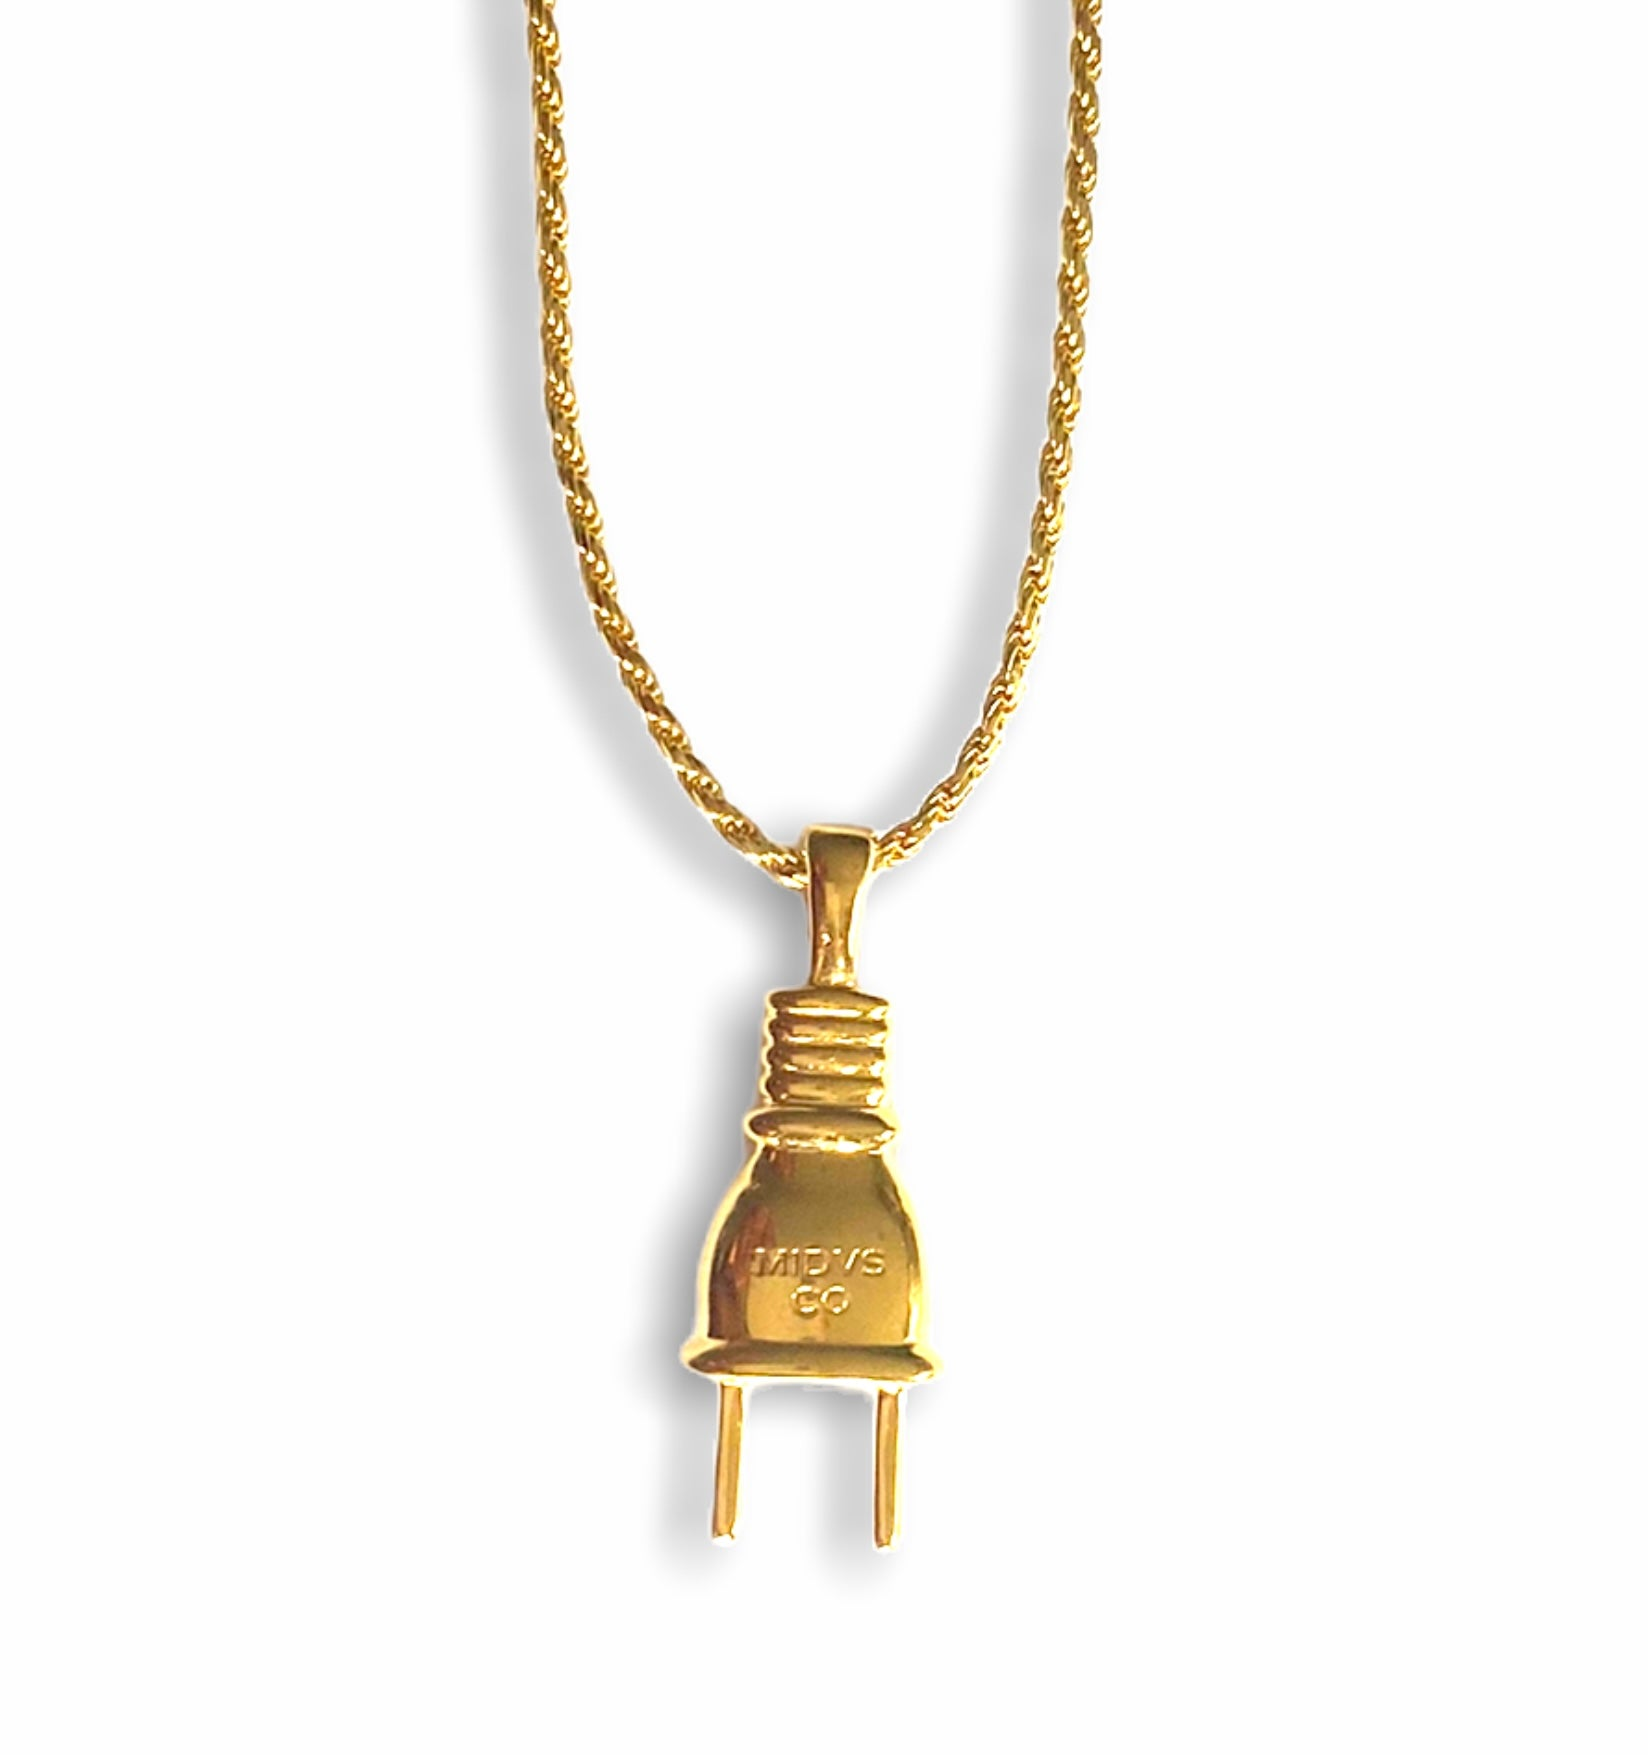 The Plug Pendant by Midas Co